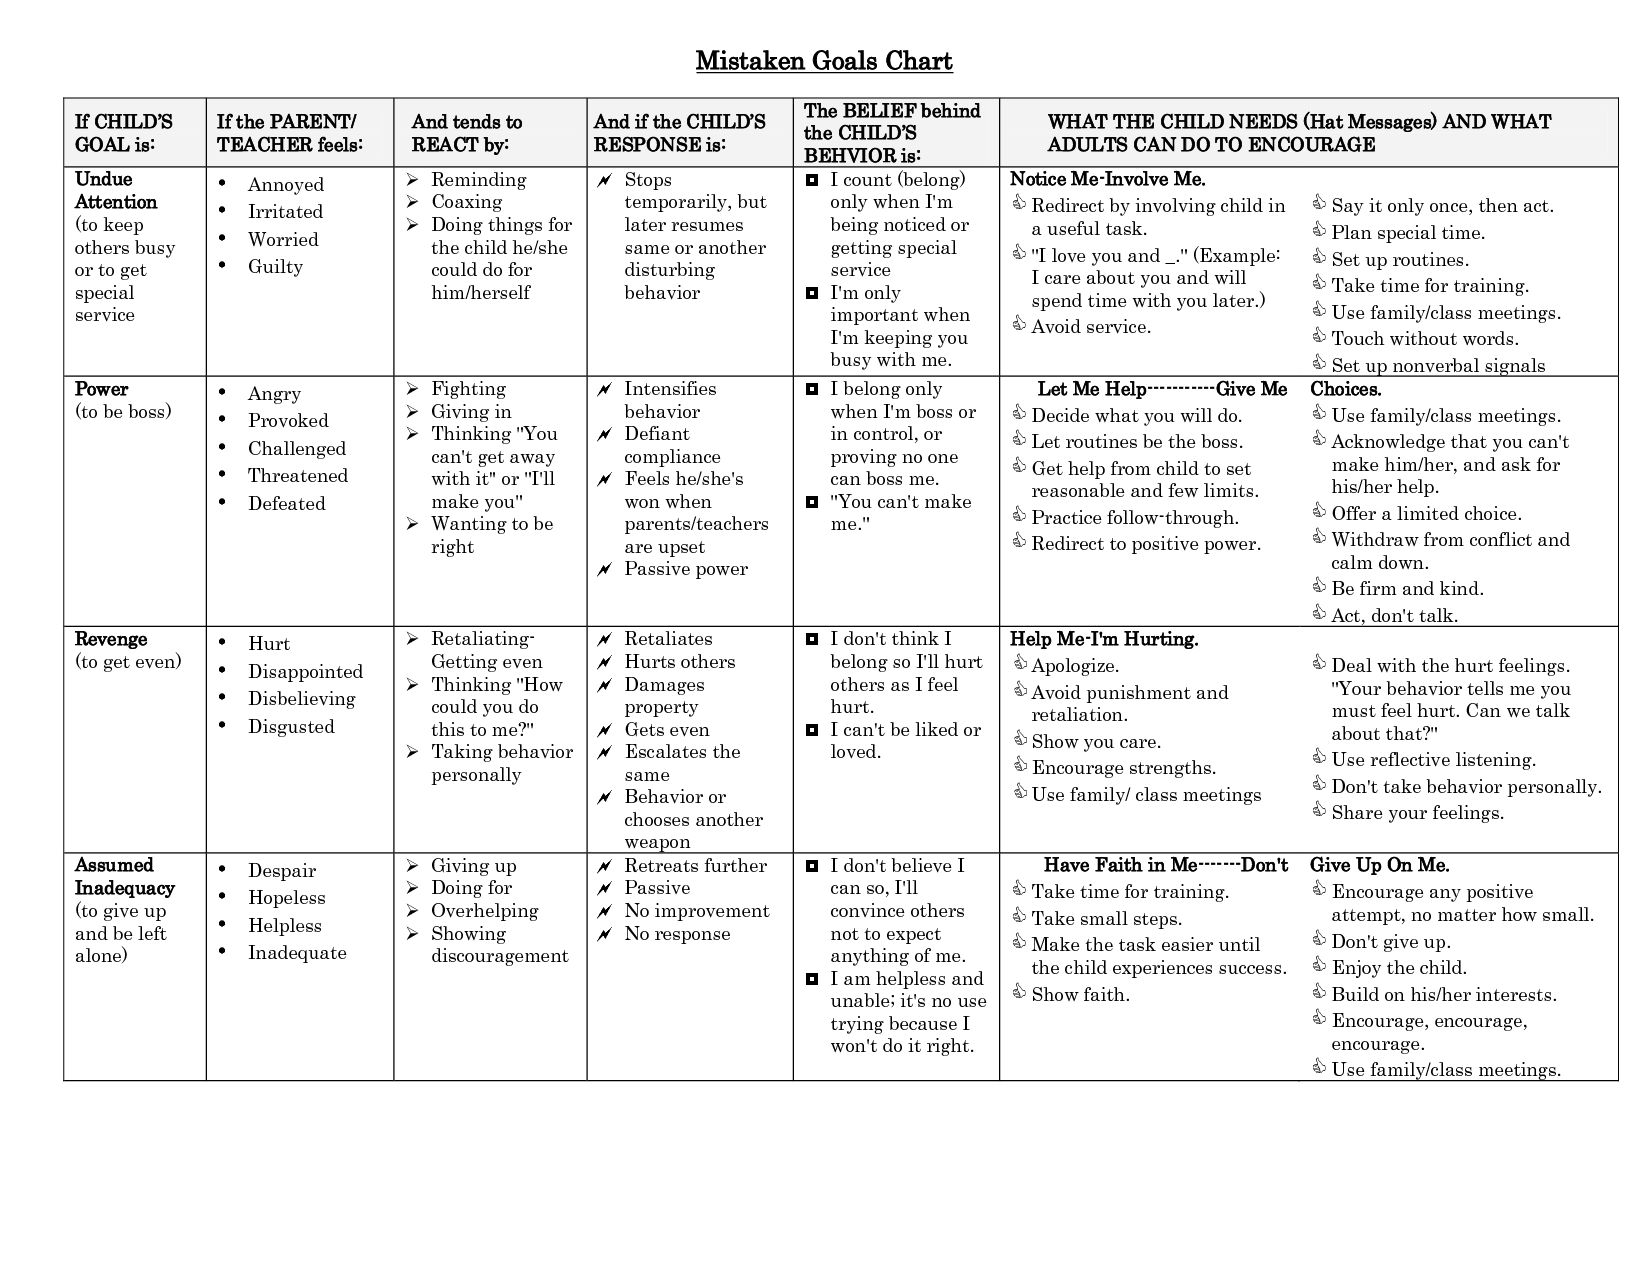 Mistaken Goals Of Misbehavior Chart